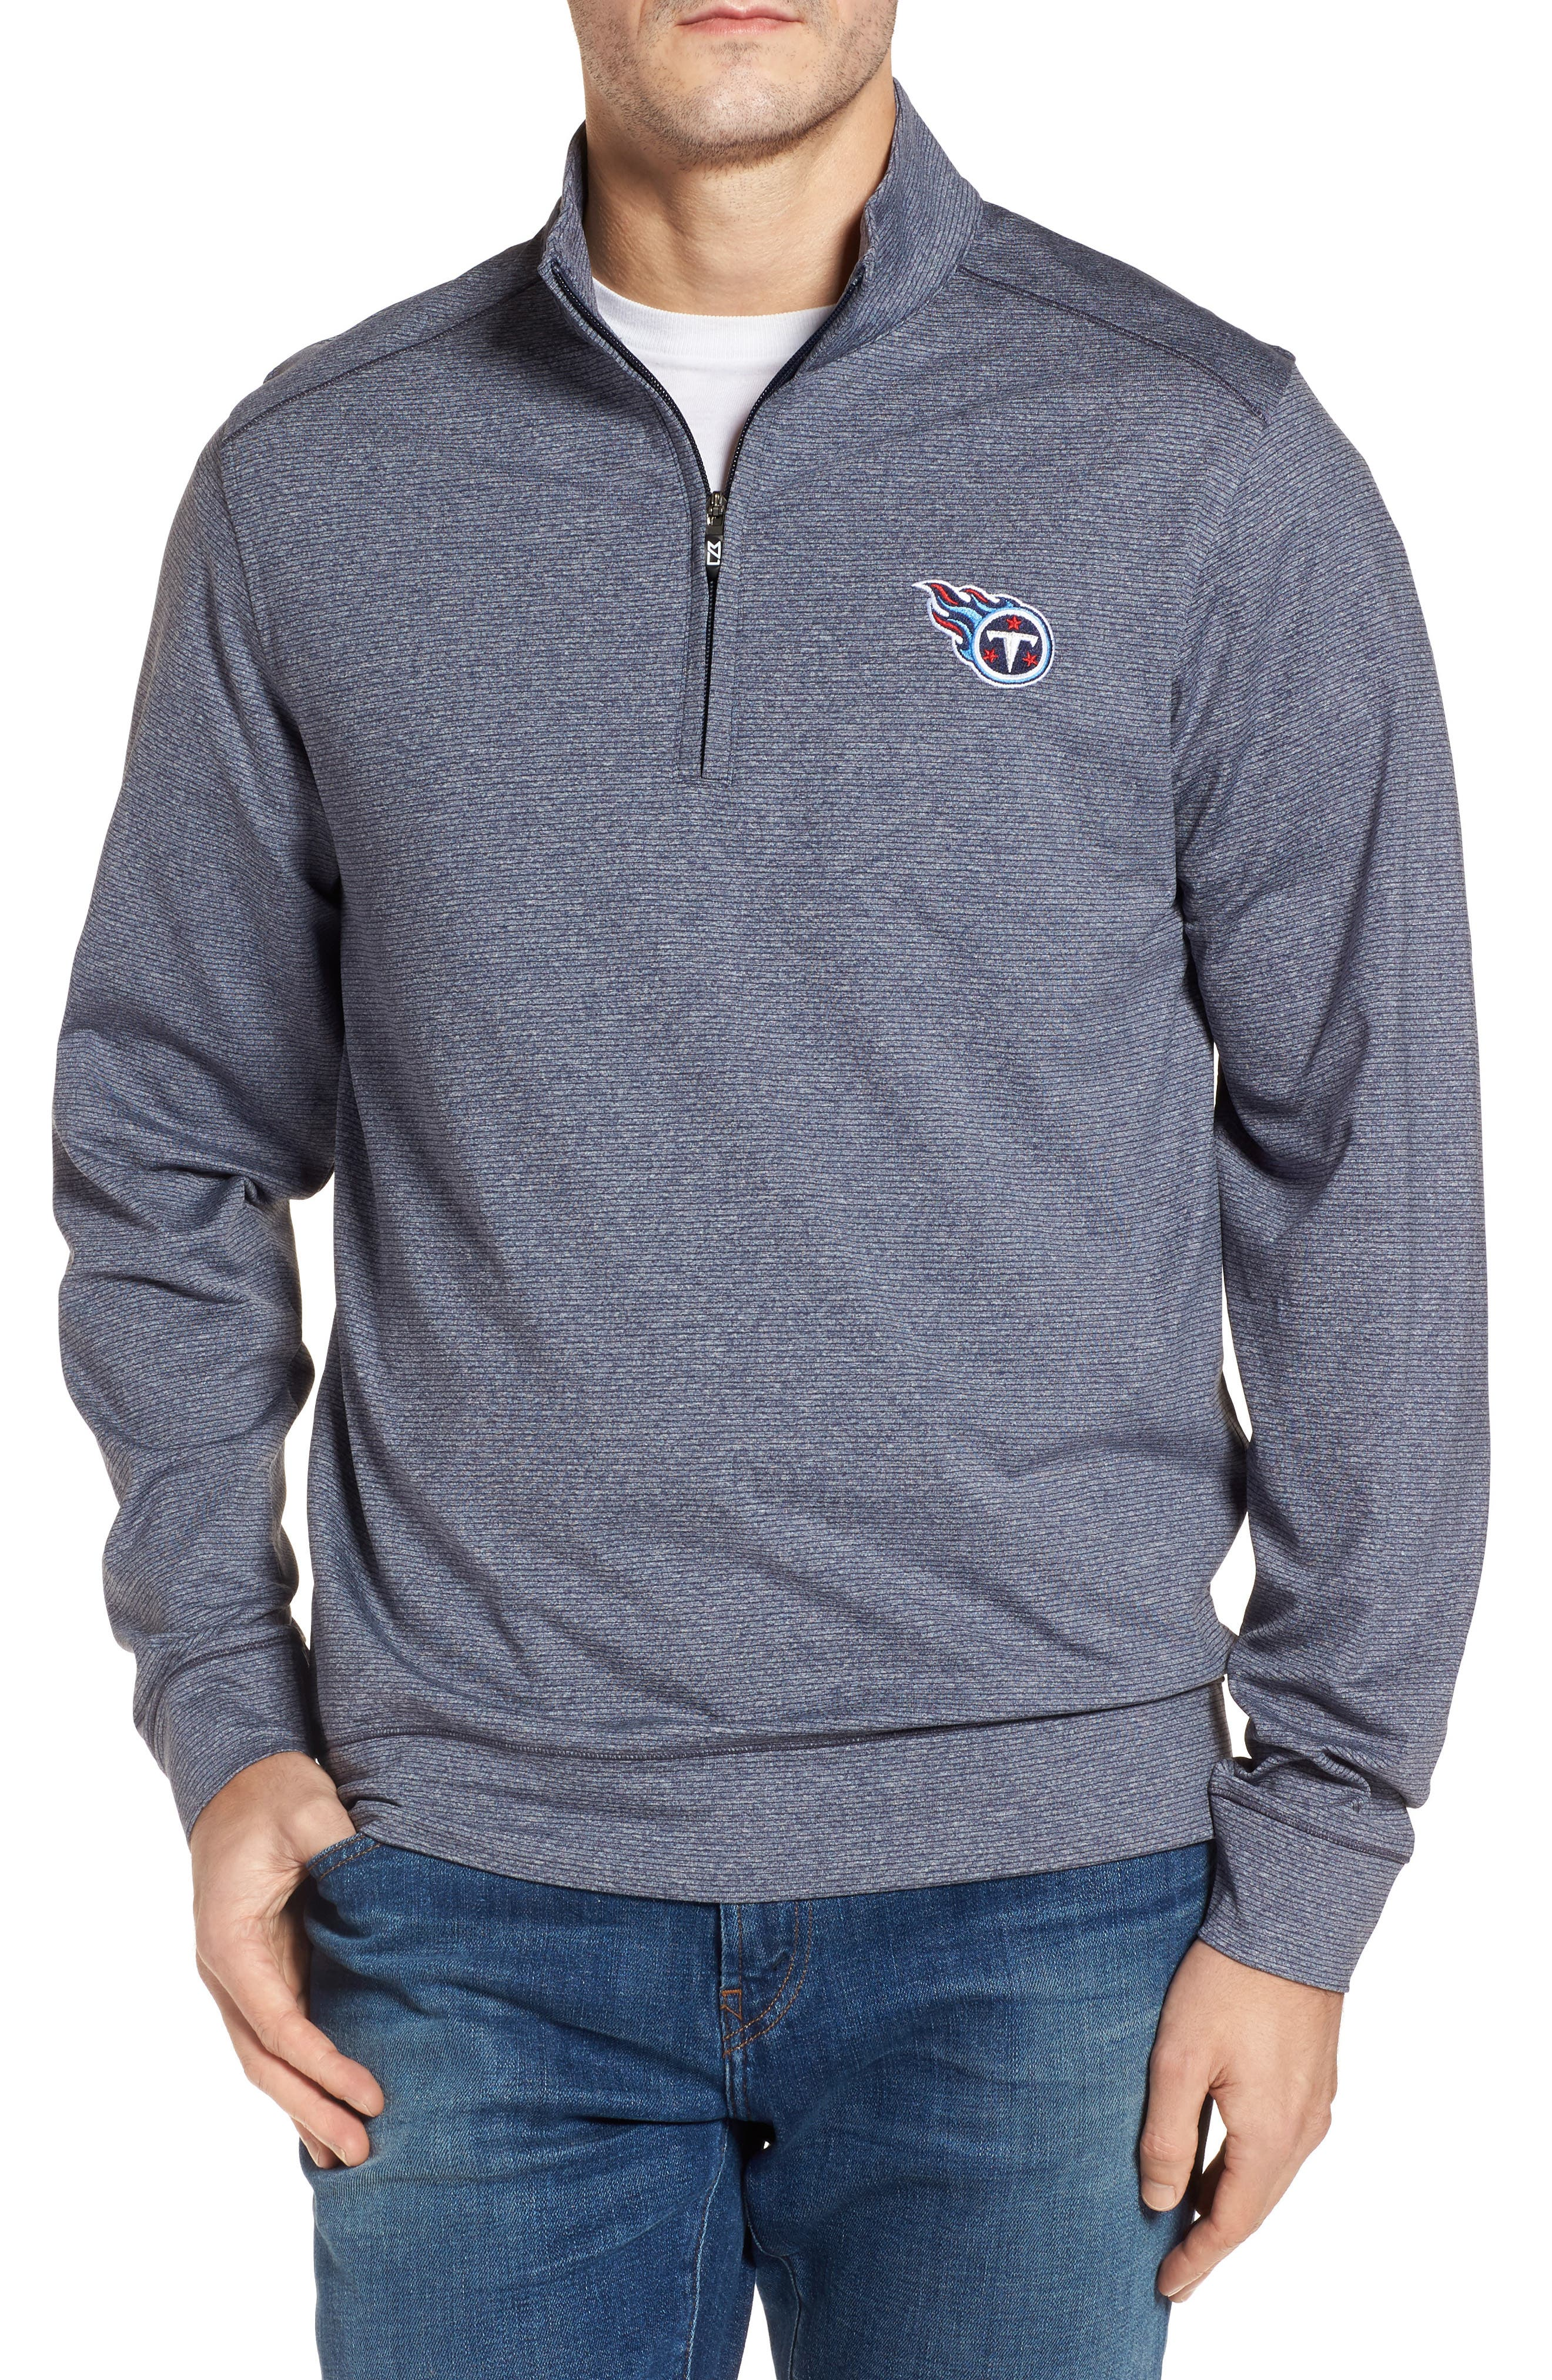 Alternate Image 1 Selected - Cutter & Buck Shoreline - Tennessee Titans Half Zip Pullover